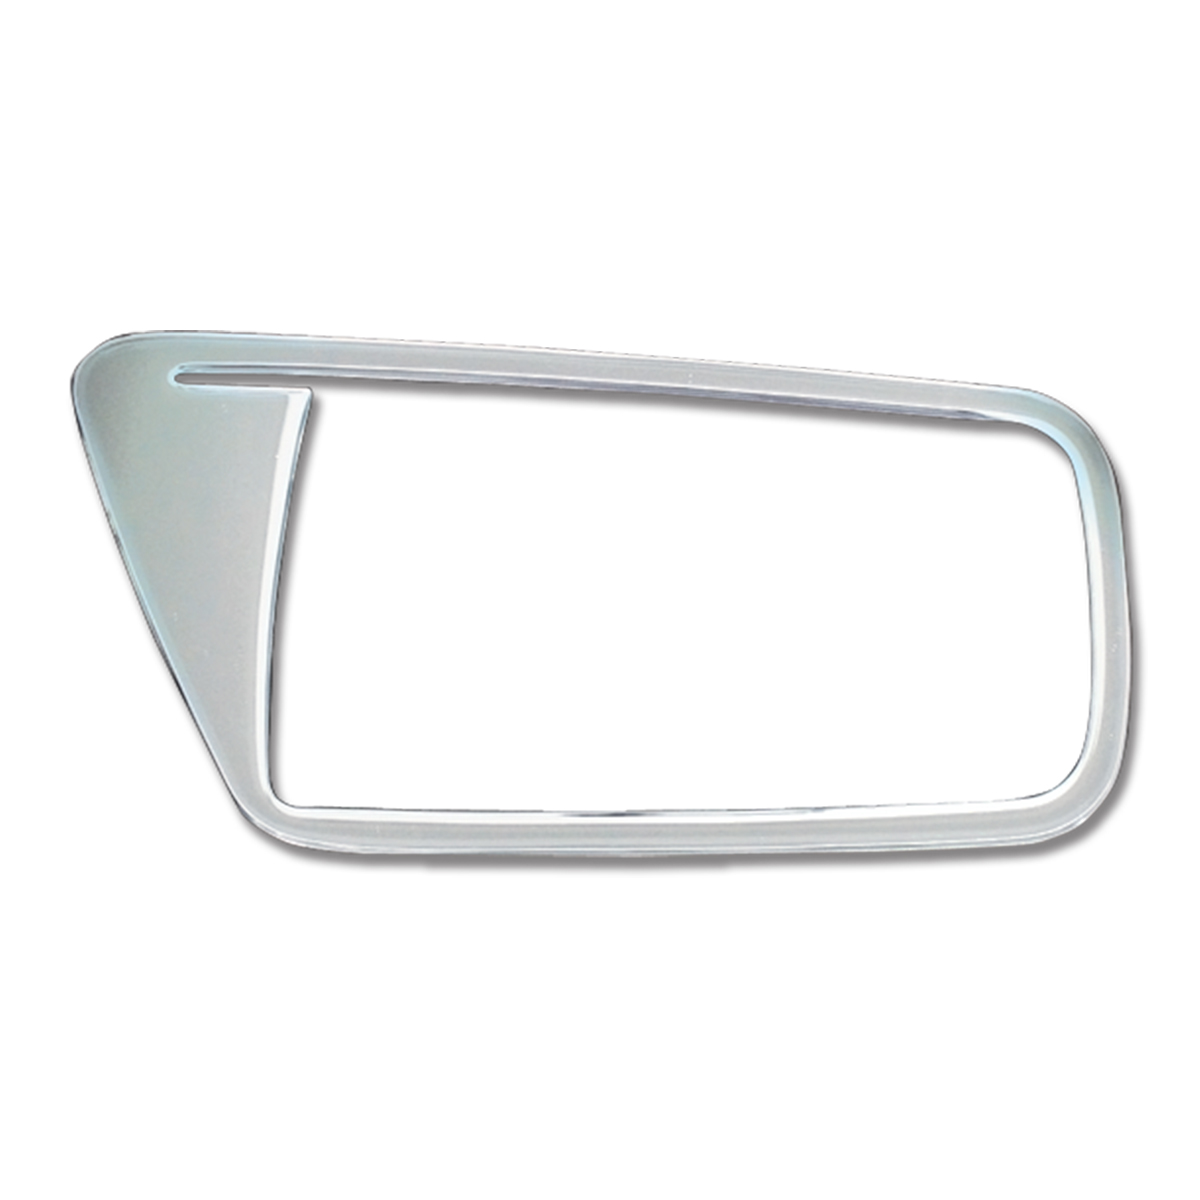 GG Grand General 68923 Chrome Plastic Driver Door Ring for Kenworth Early-2006 Wand T Model